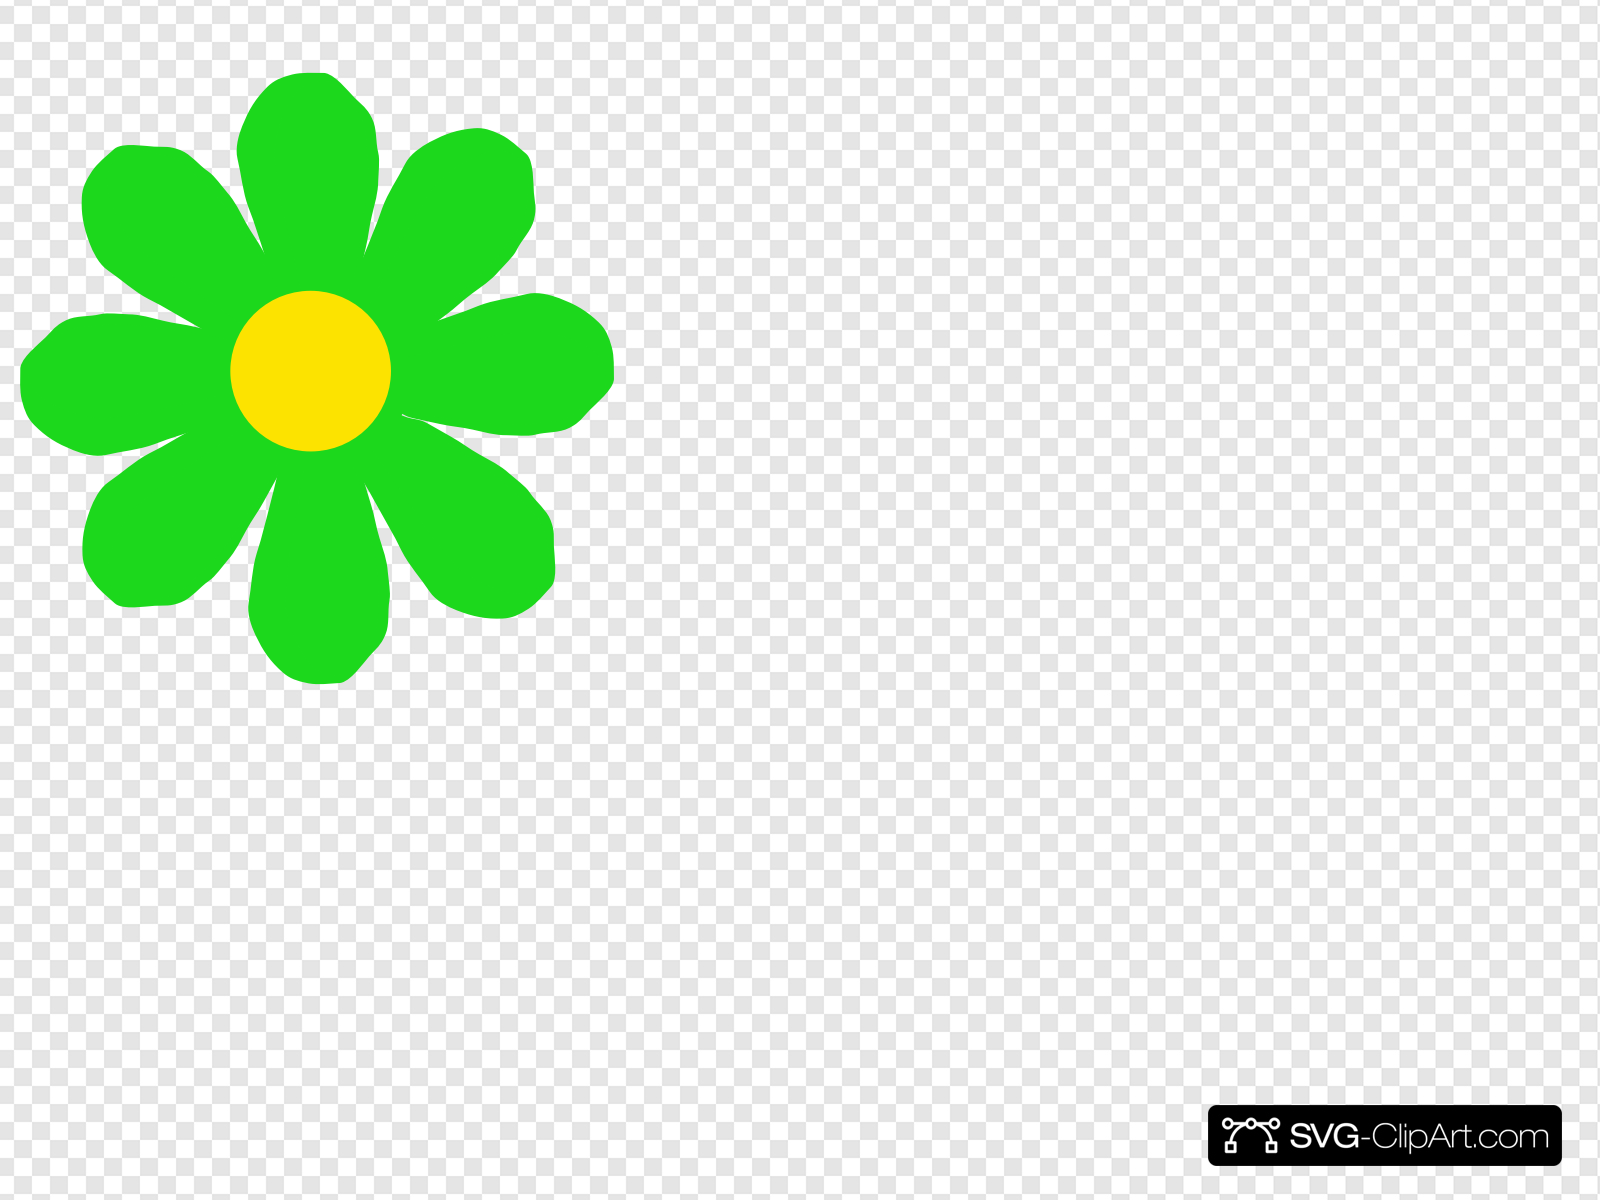 Bright Green Flower Clip art, Icon and SVG.